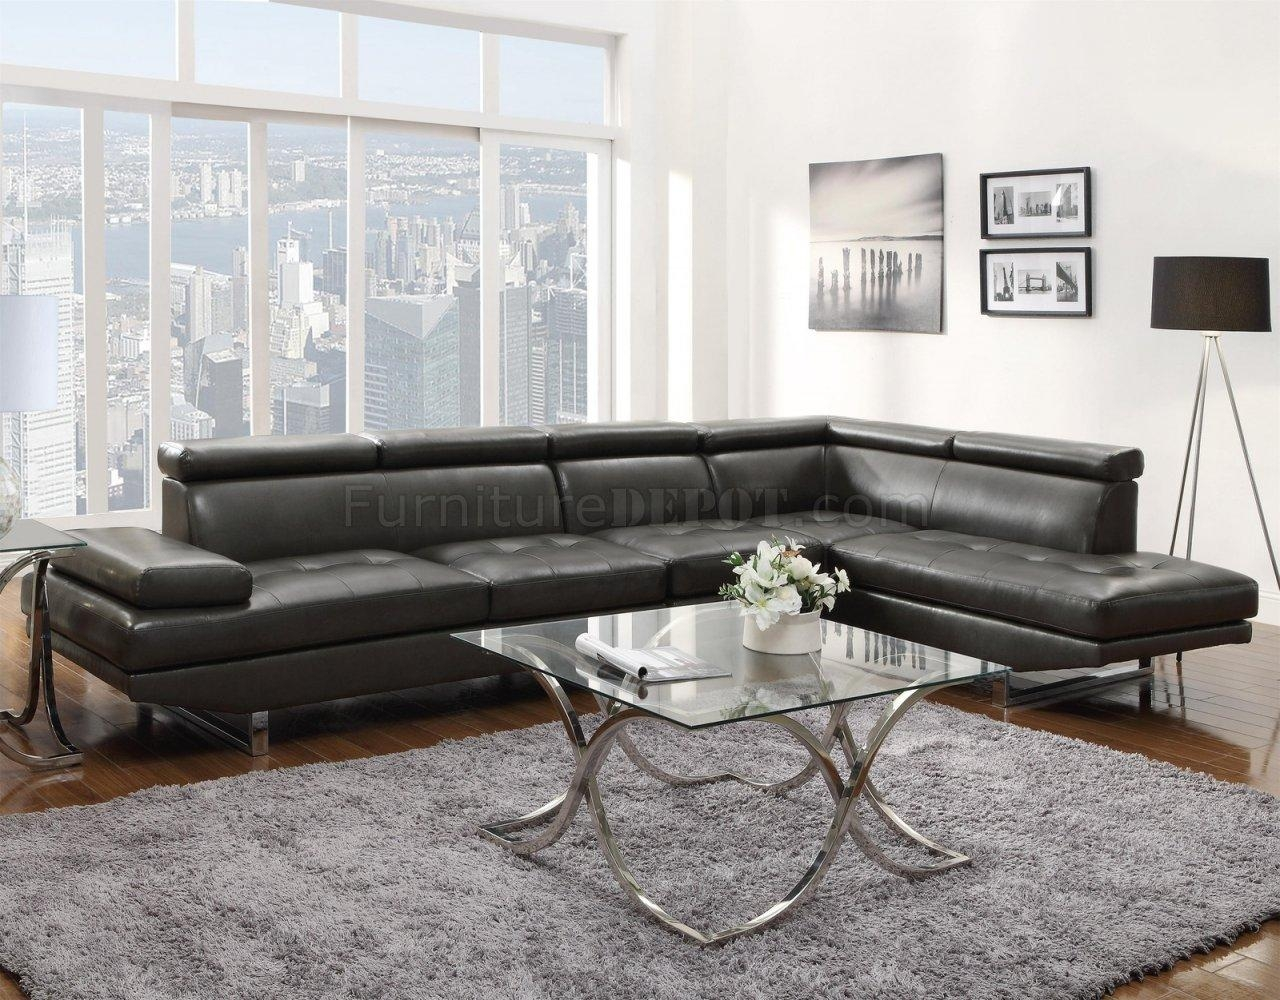 Coaster Sectional Sofa | Sofa Gallery | Kengire Regarding Coaster Sectional Sofas (Image 10 of 20)